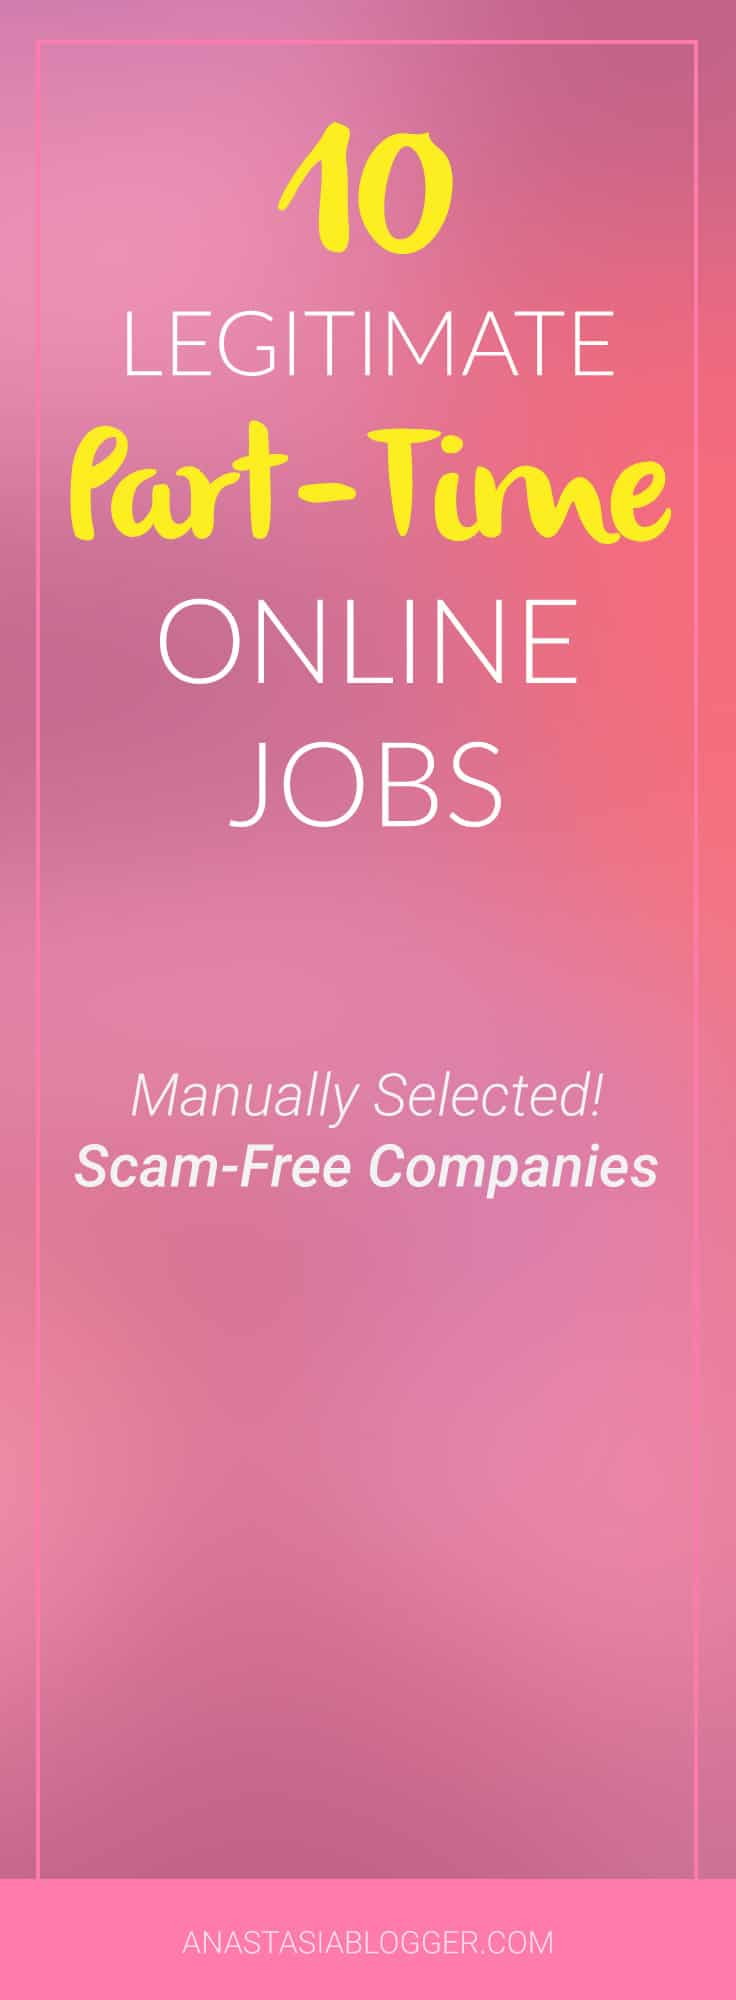 part time online jobs scam manually selected companies 10 ligitimate part time online jobs manually selected companies which offer online jobs for